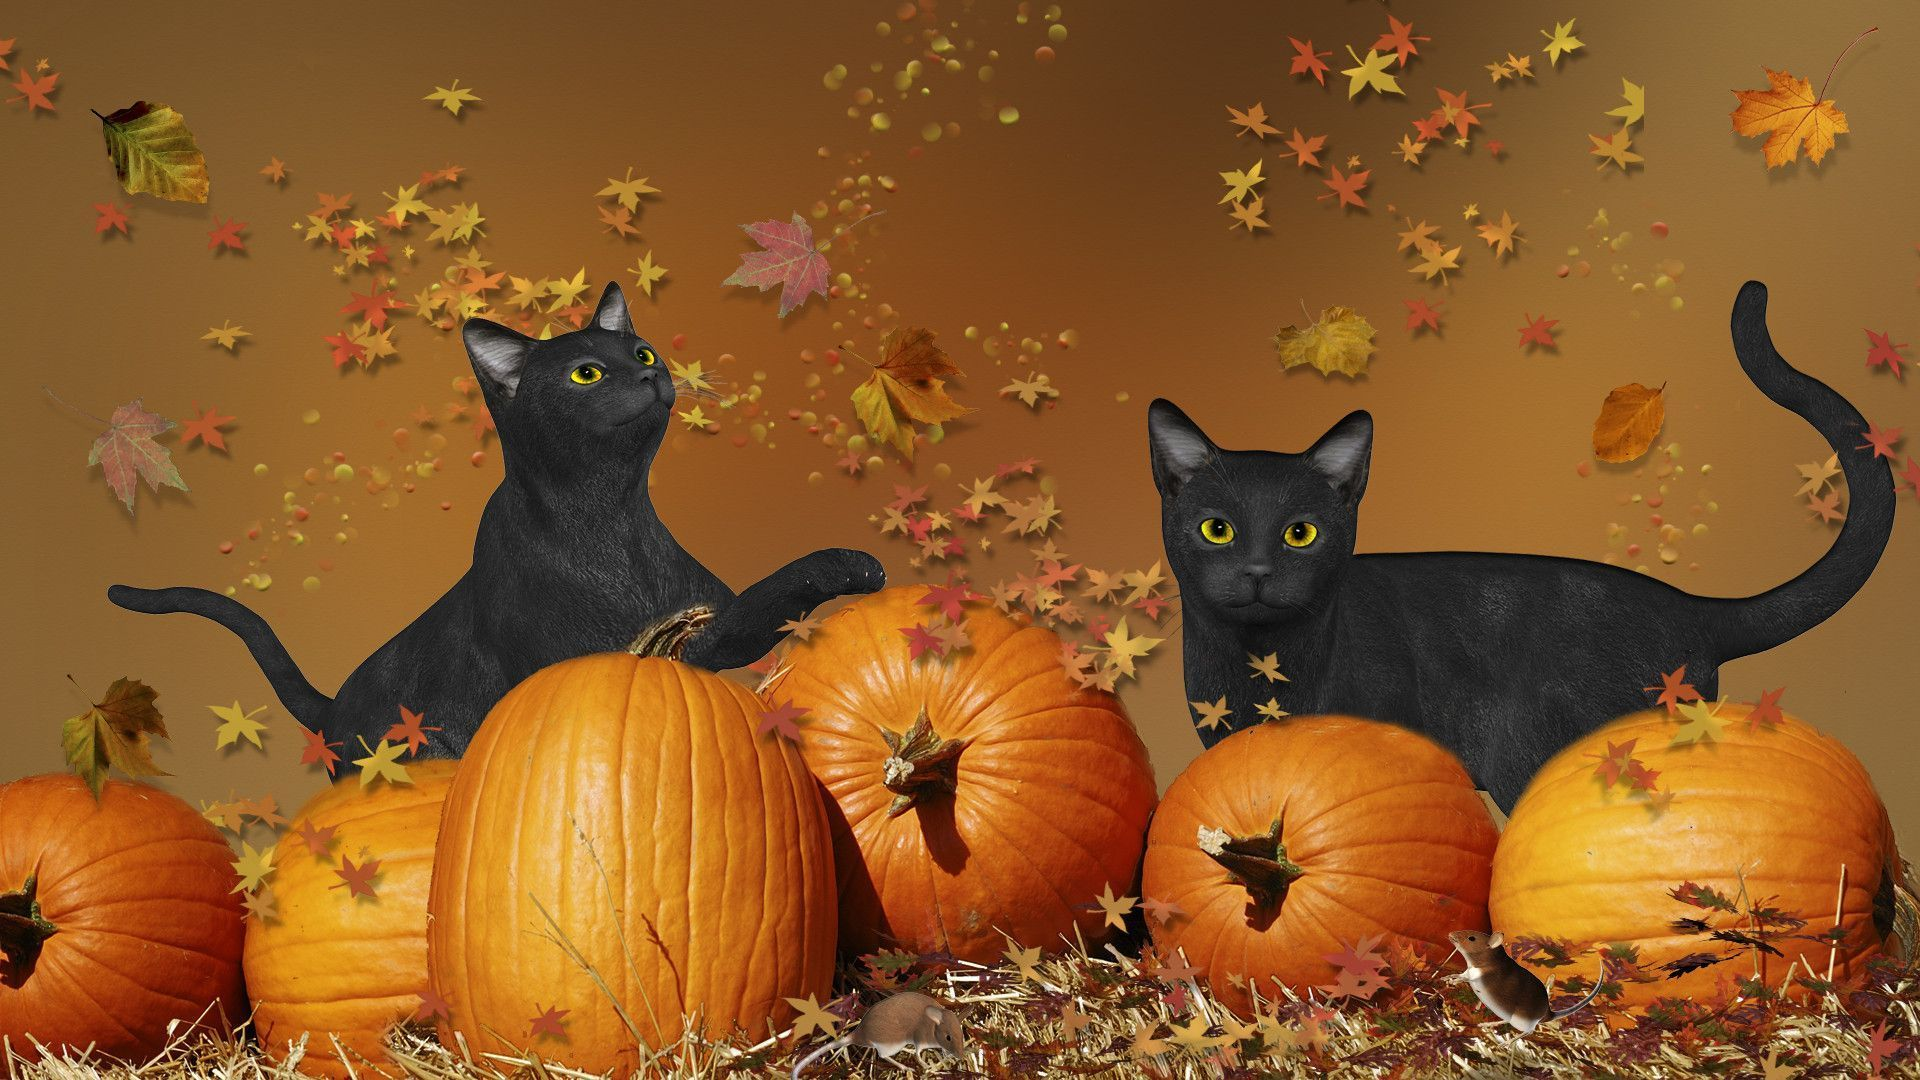 Halloween Cat Wallpapers Wallpaper Cave Black Cat Halloween Halloween Cat Cute Halloween